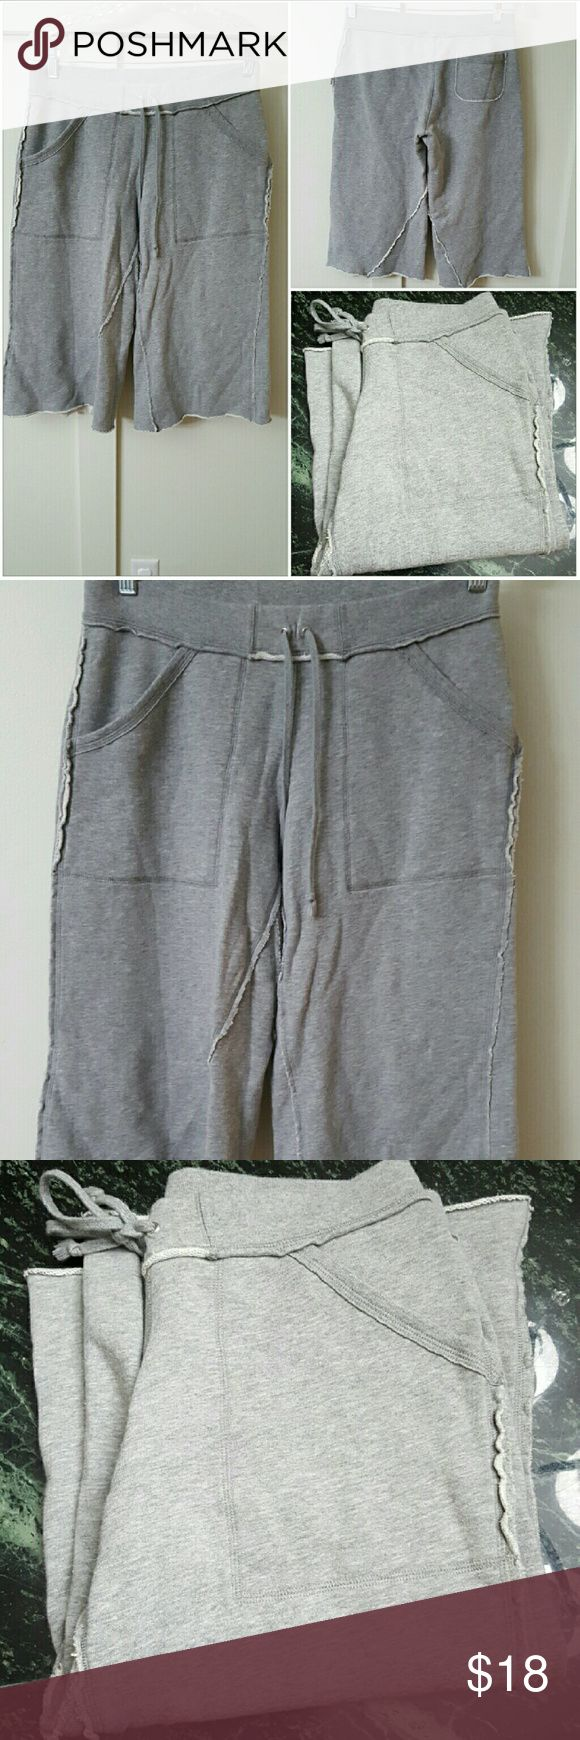 BANANA REPUBLIC SMALL GRAY DISTRESSED SHORTS Banana Republic small gray long shorts. Distressed as part of the design. Fake front tie. Pre-owned and in good condition. 100% Cotton Banana Republic Shorts